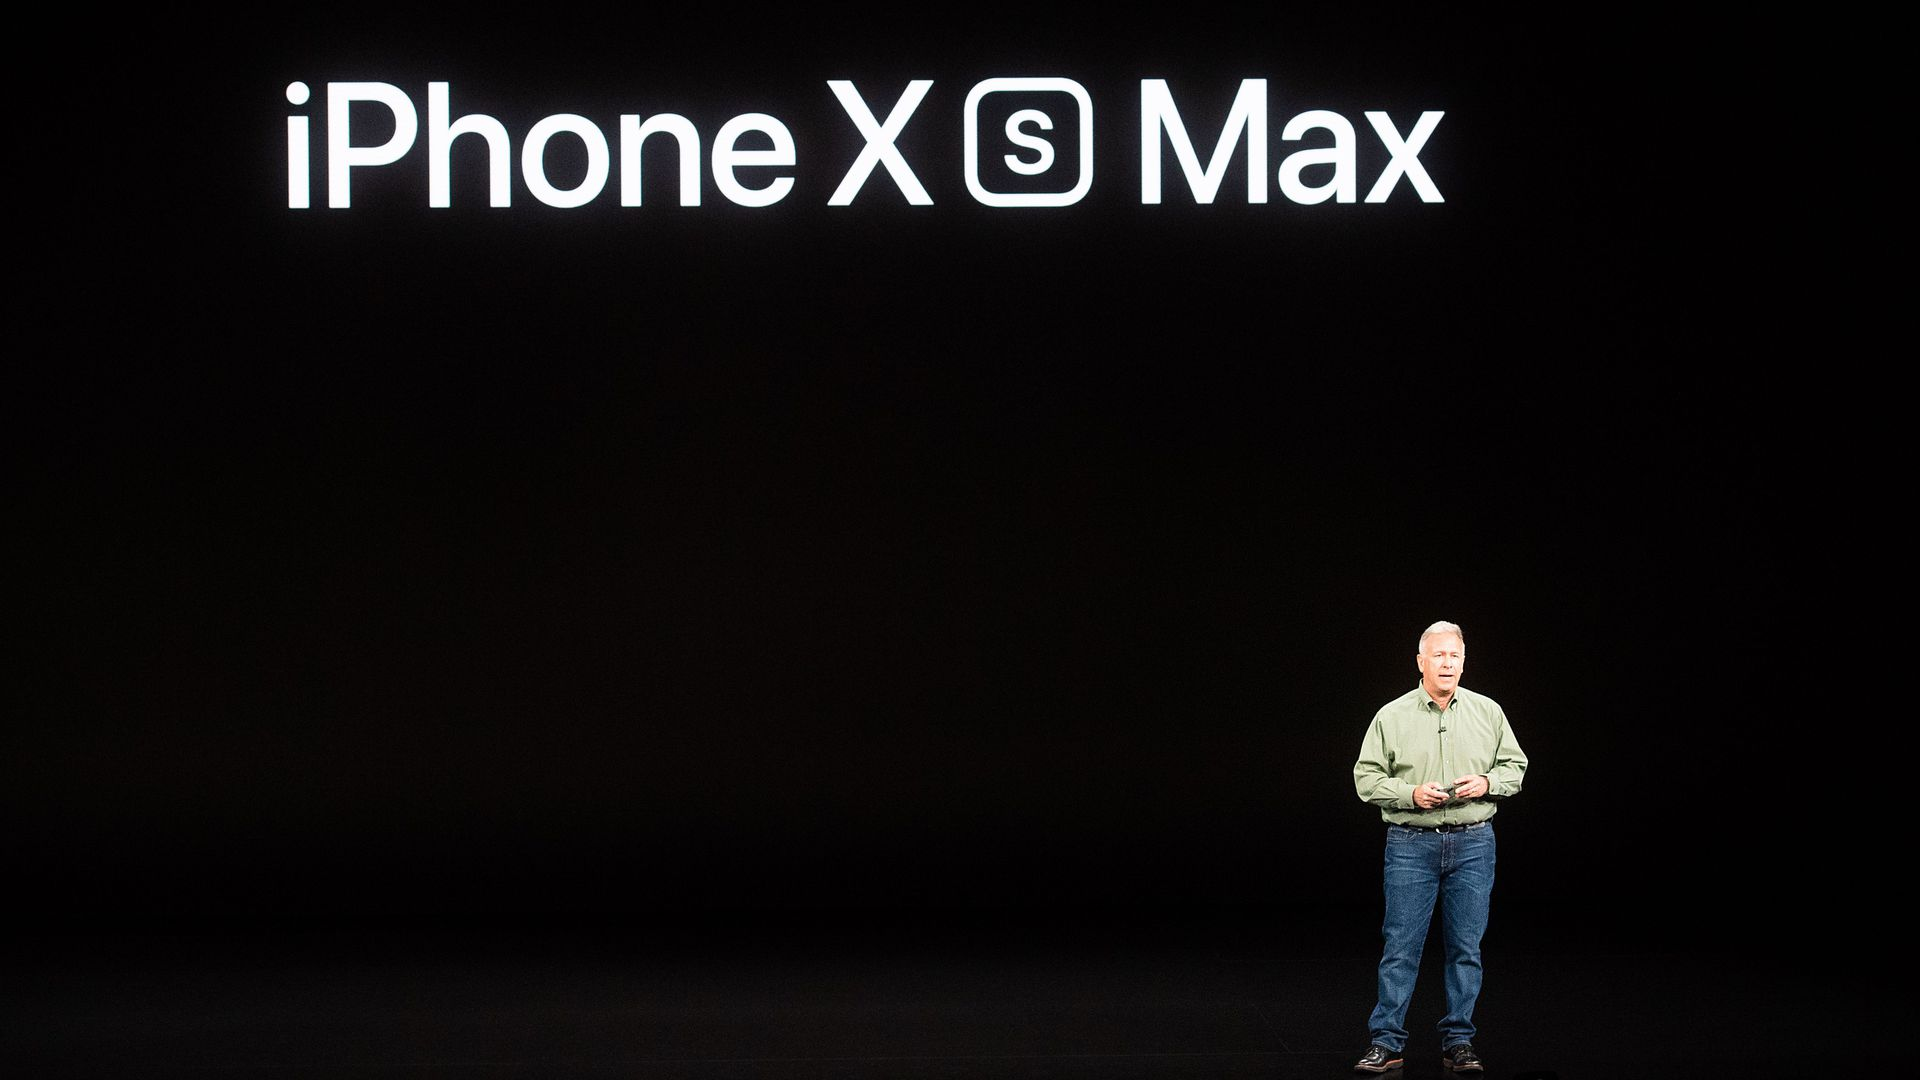 iPhone XS max event